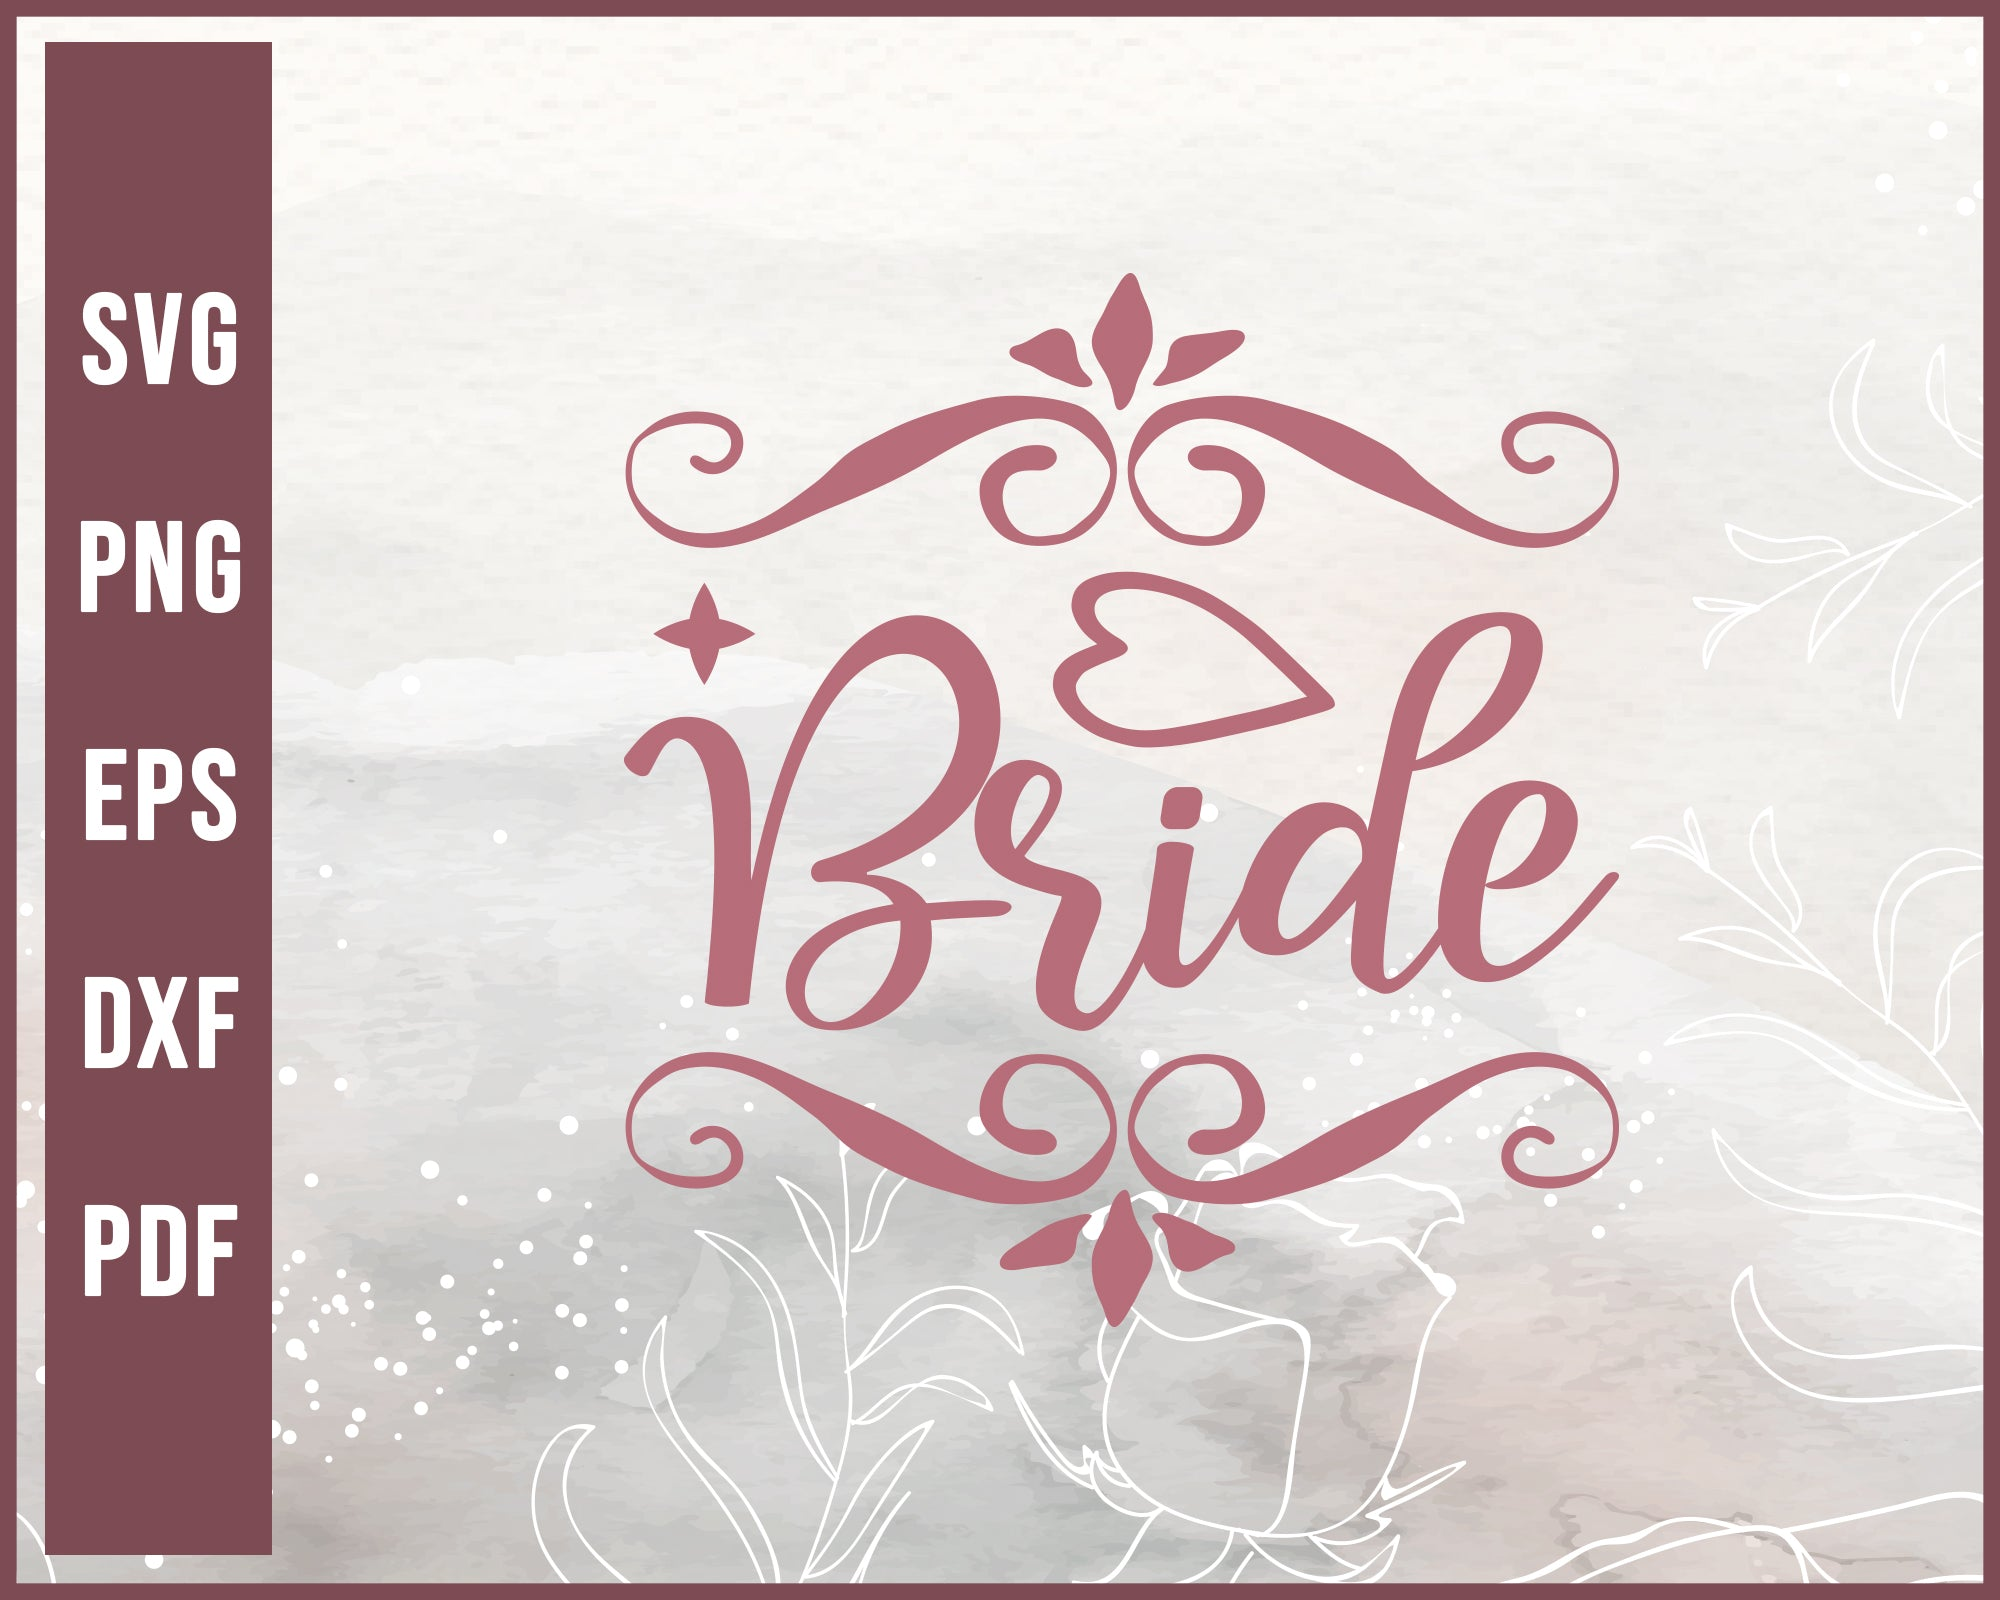 Bride Wedding svg Designs For Cricut Silhouette And eps png Printable Files